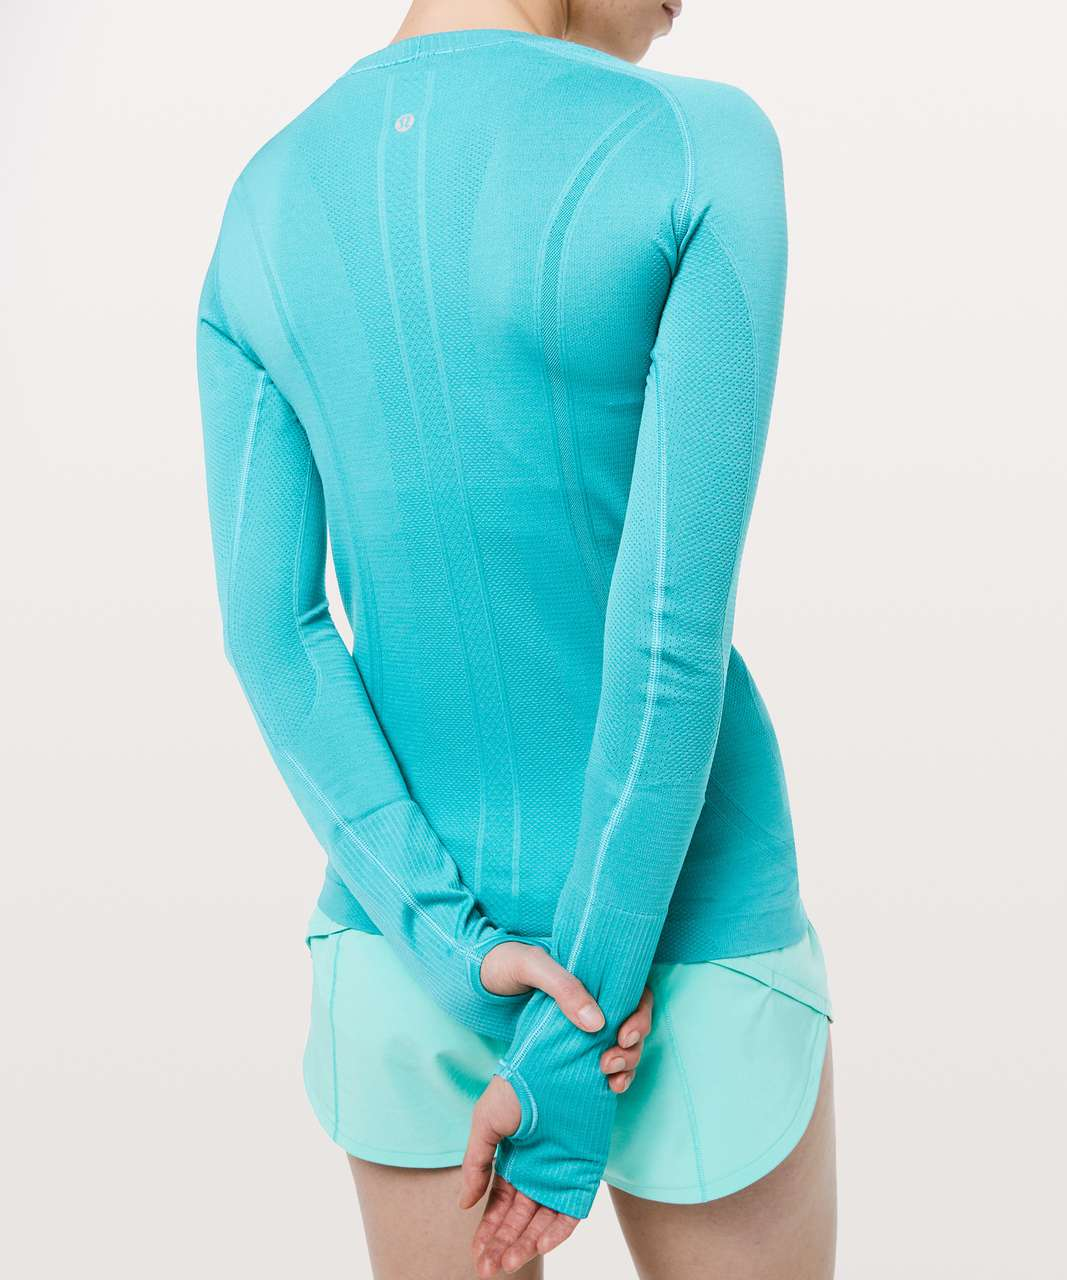 Lululemon Swiftly Tech Long Sleeve Crew - Amazonite / Amazonite